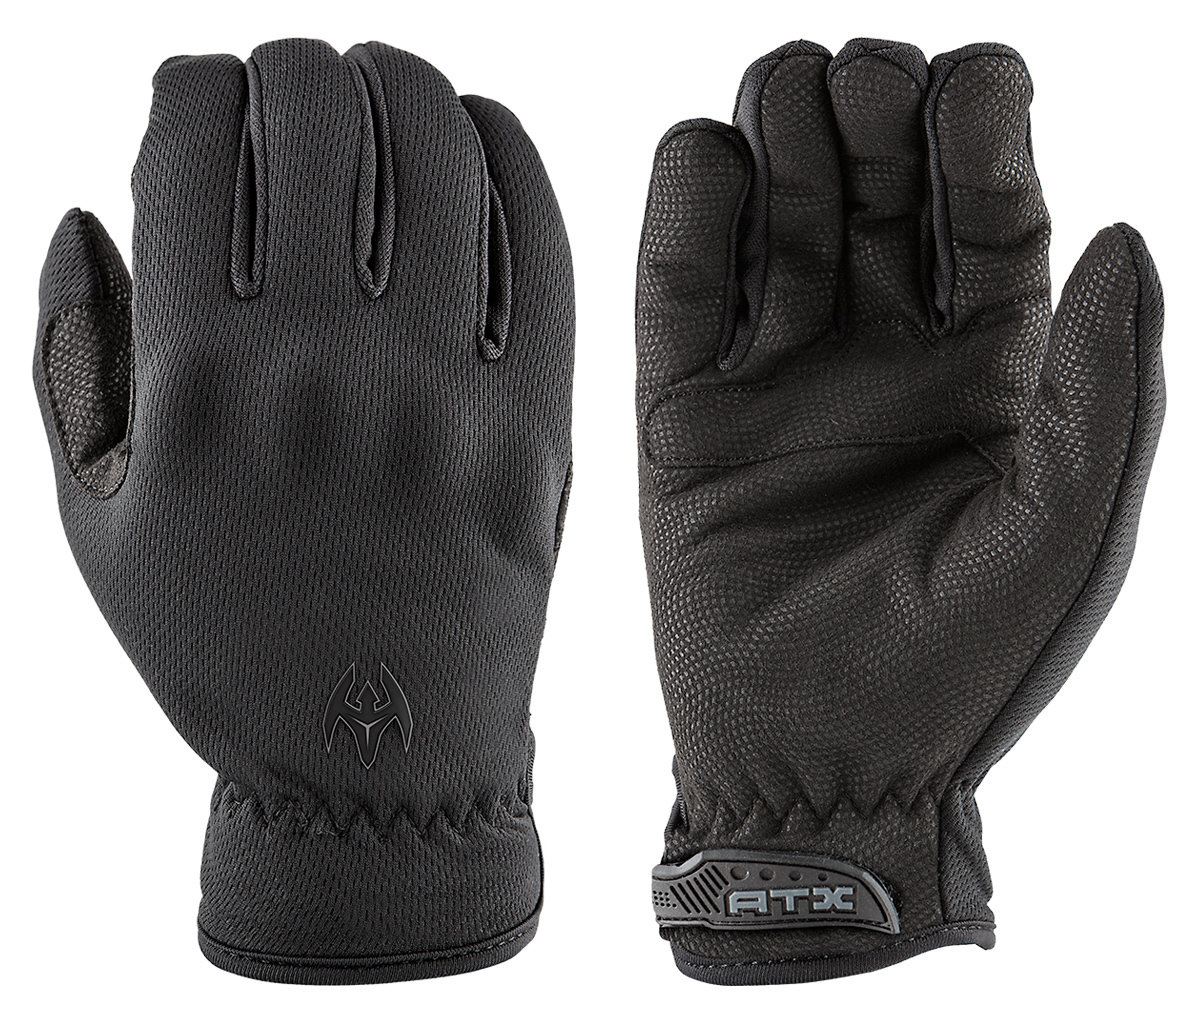 Lightweight Cut Resistant Patrol Gloves w/ Kevlar® Palm ATX100